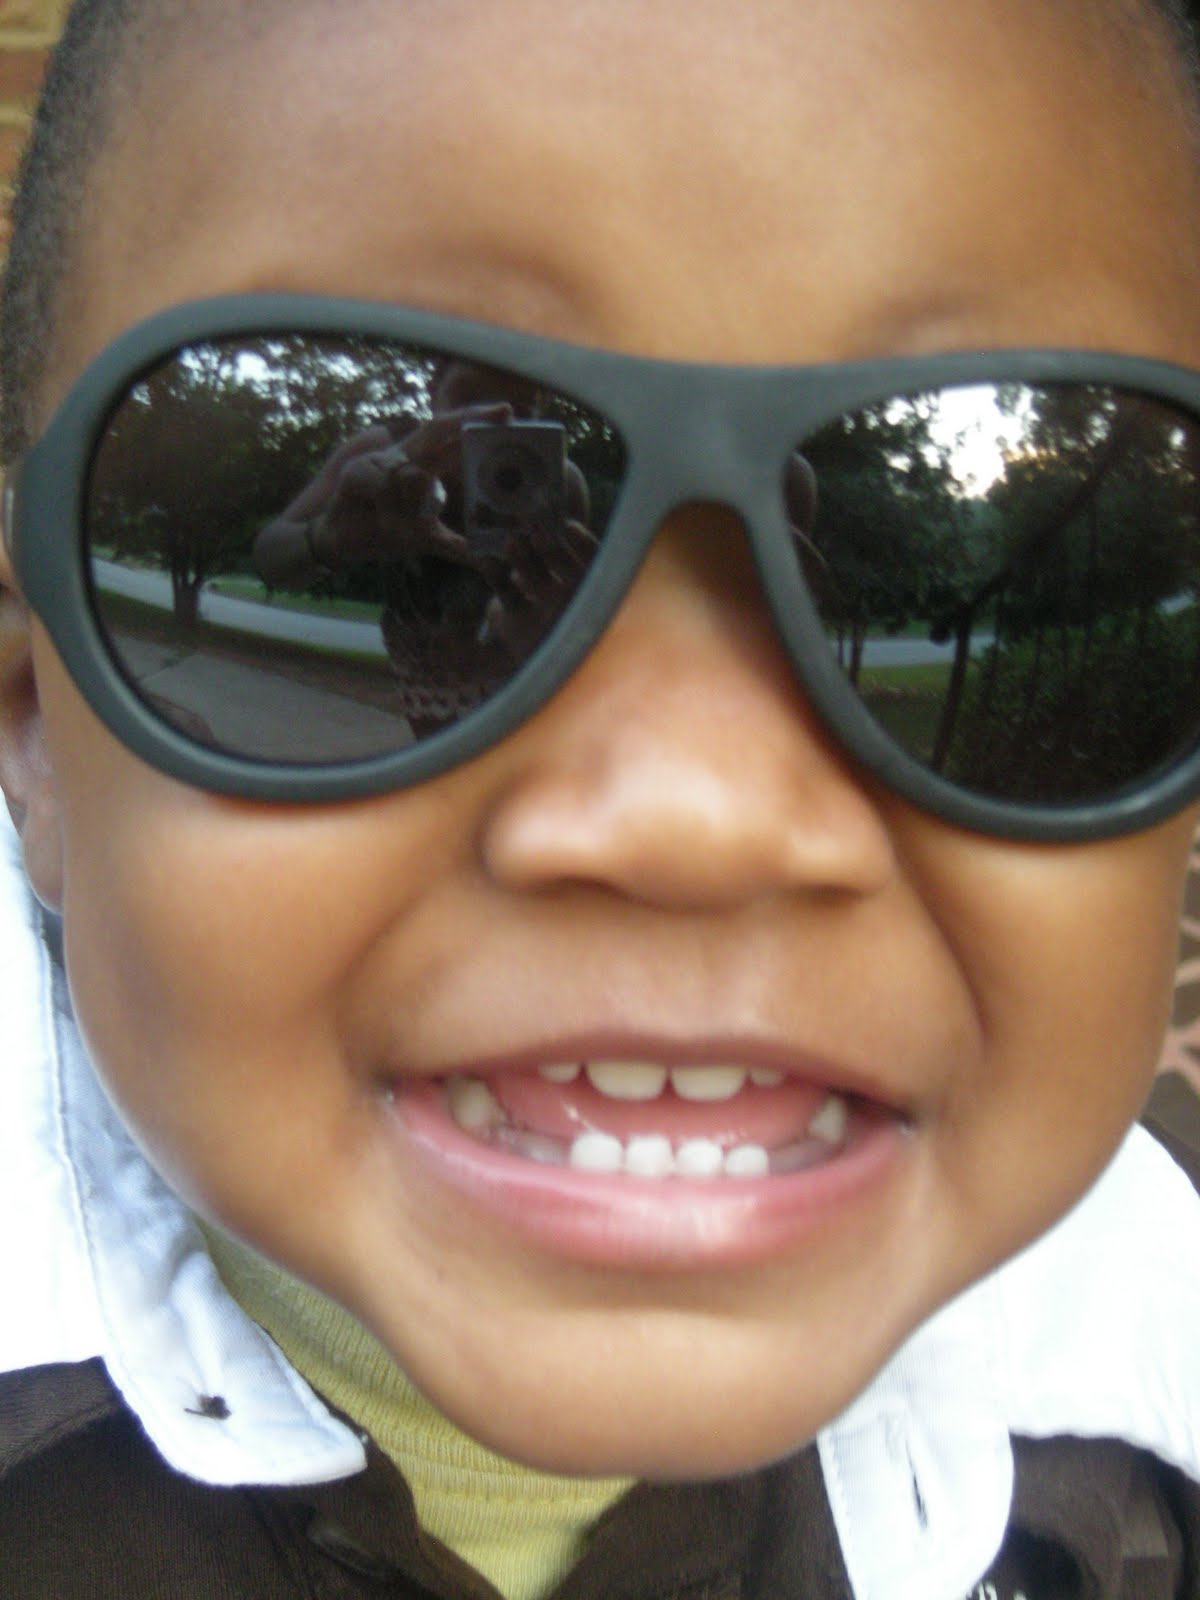 Sojourner Marable Grimmett New Babiators Sunglasses True Blue Classic Ages 3 7 Are Durable And Tough Just Like Your Baby Theyre Made Of Pliable Rubber So Child Can Bend Them They Wont Break